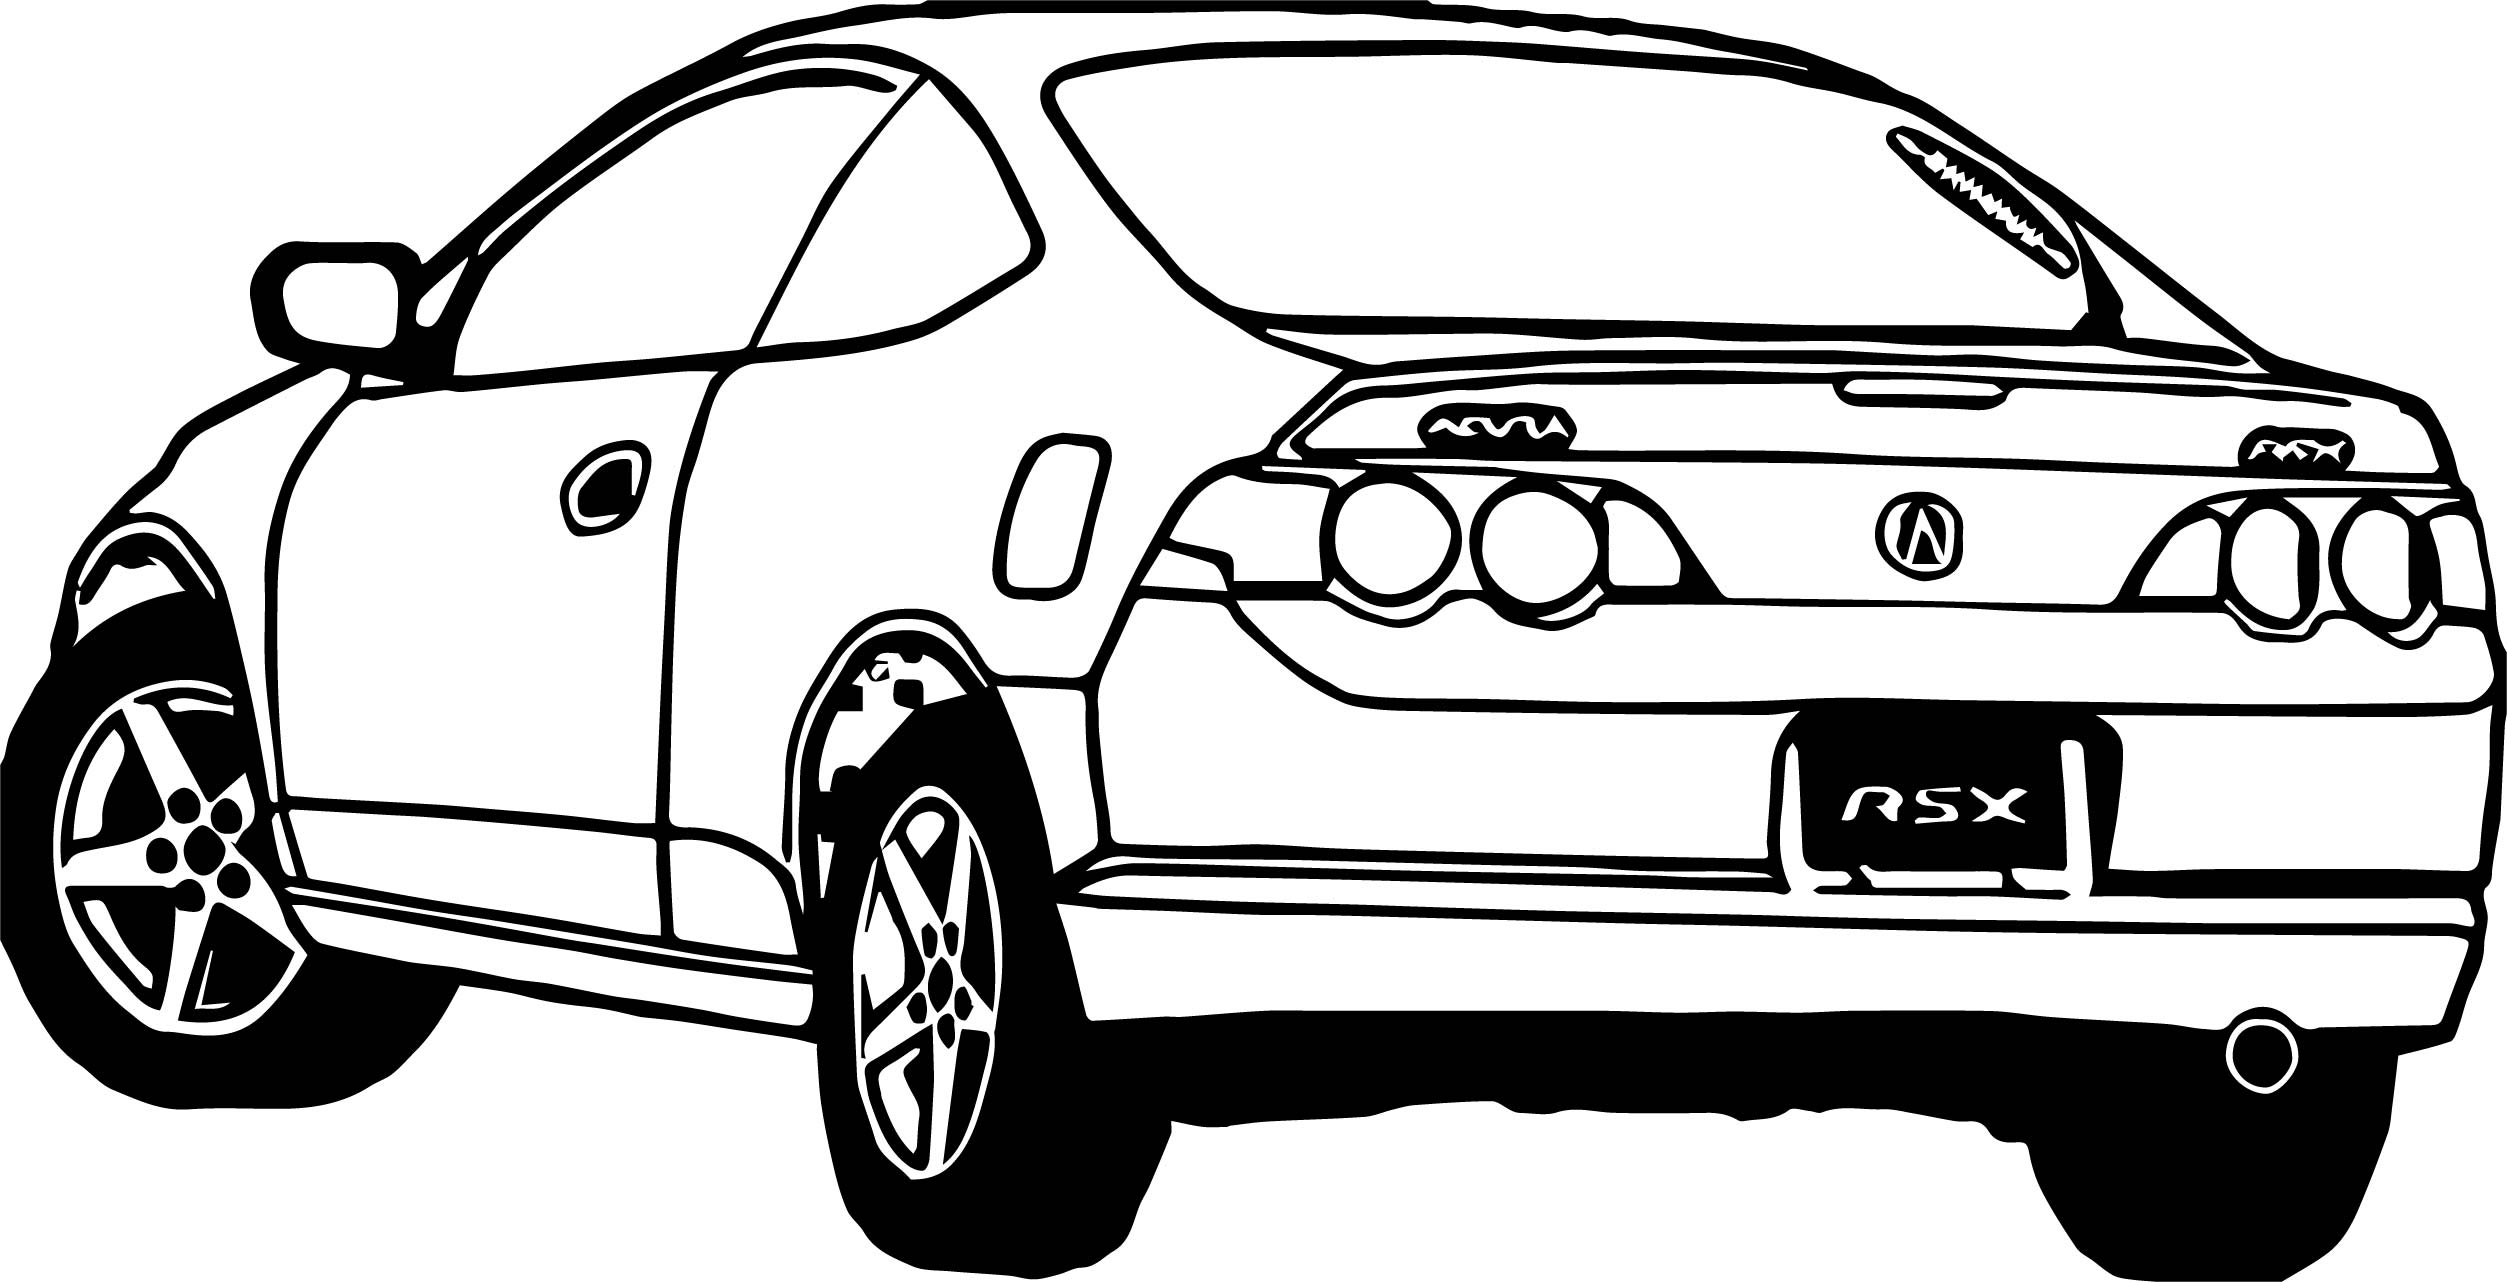 Rsx Car Coloring Page